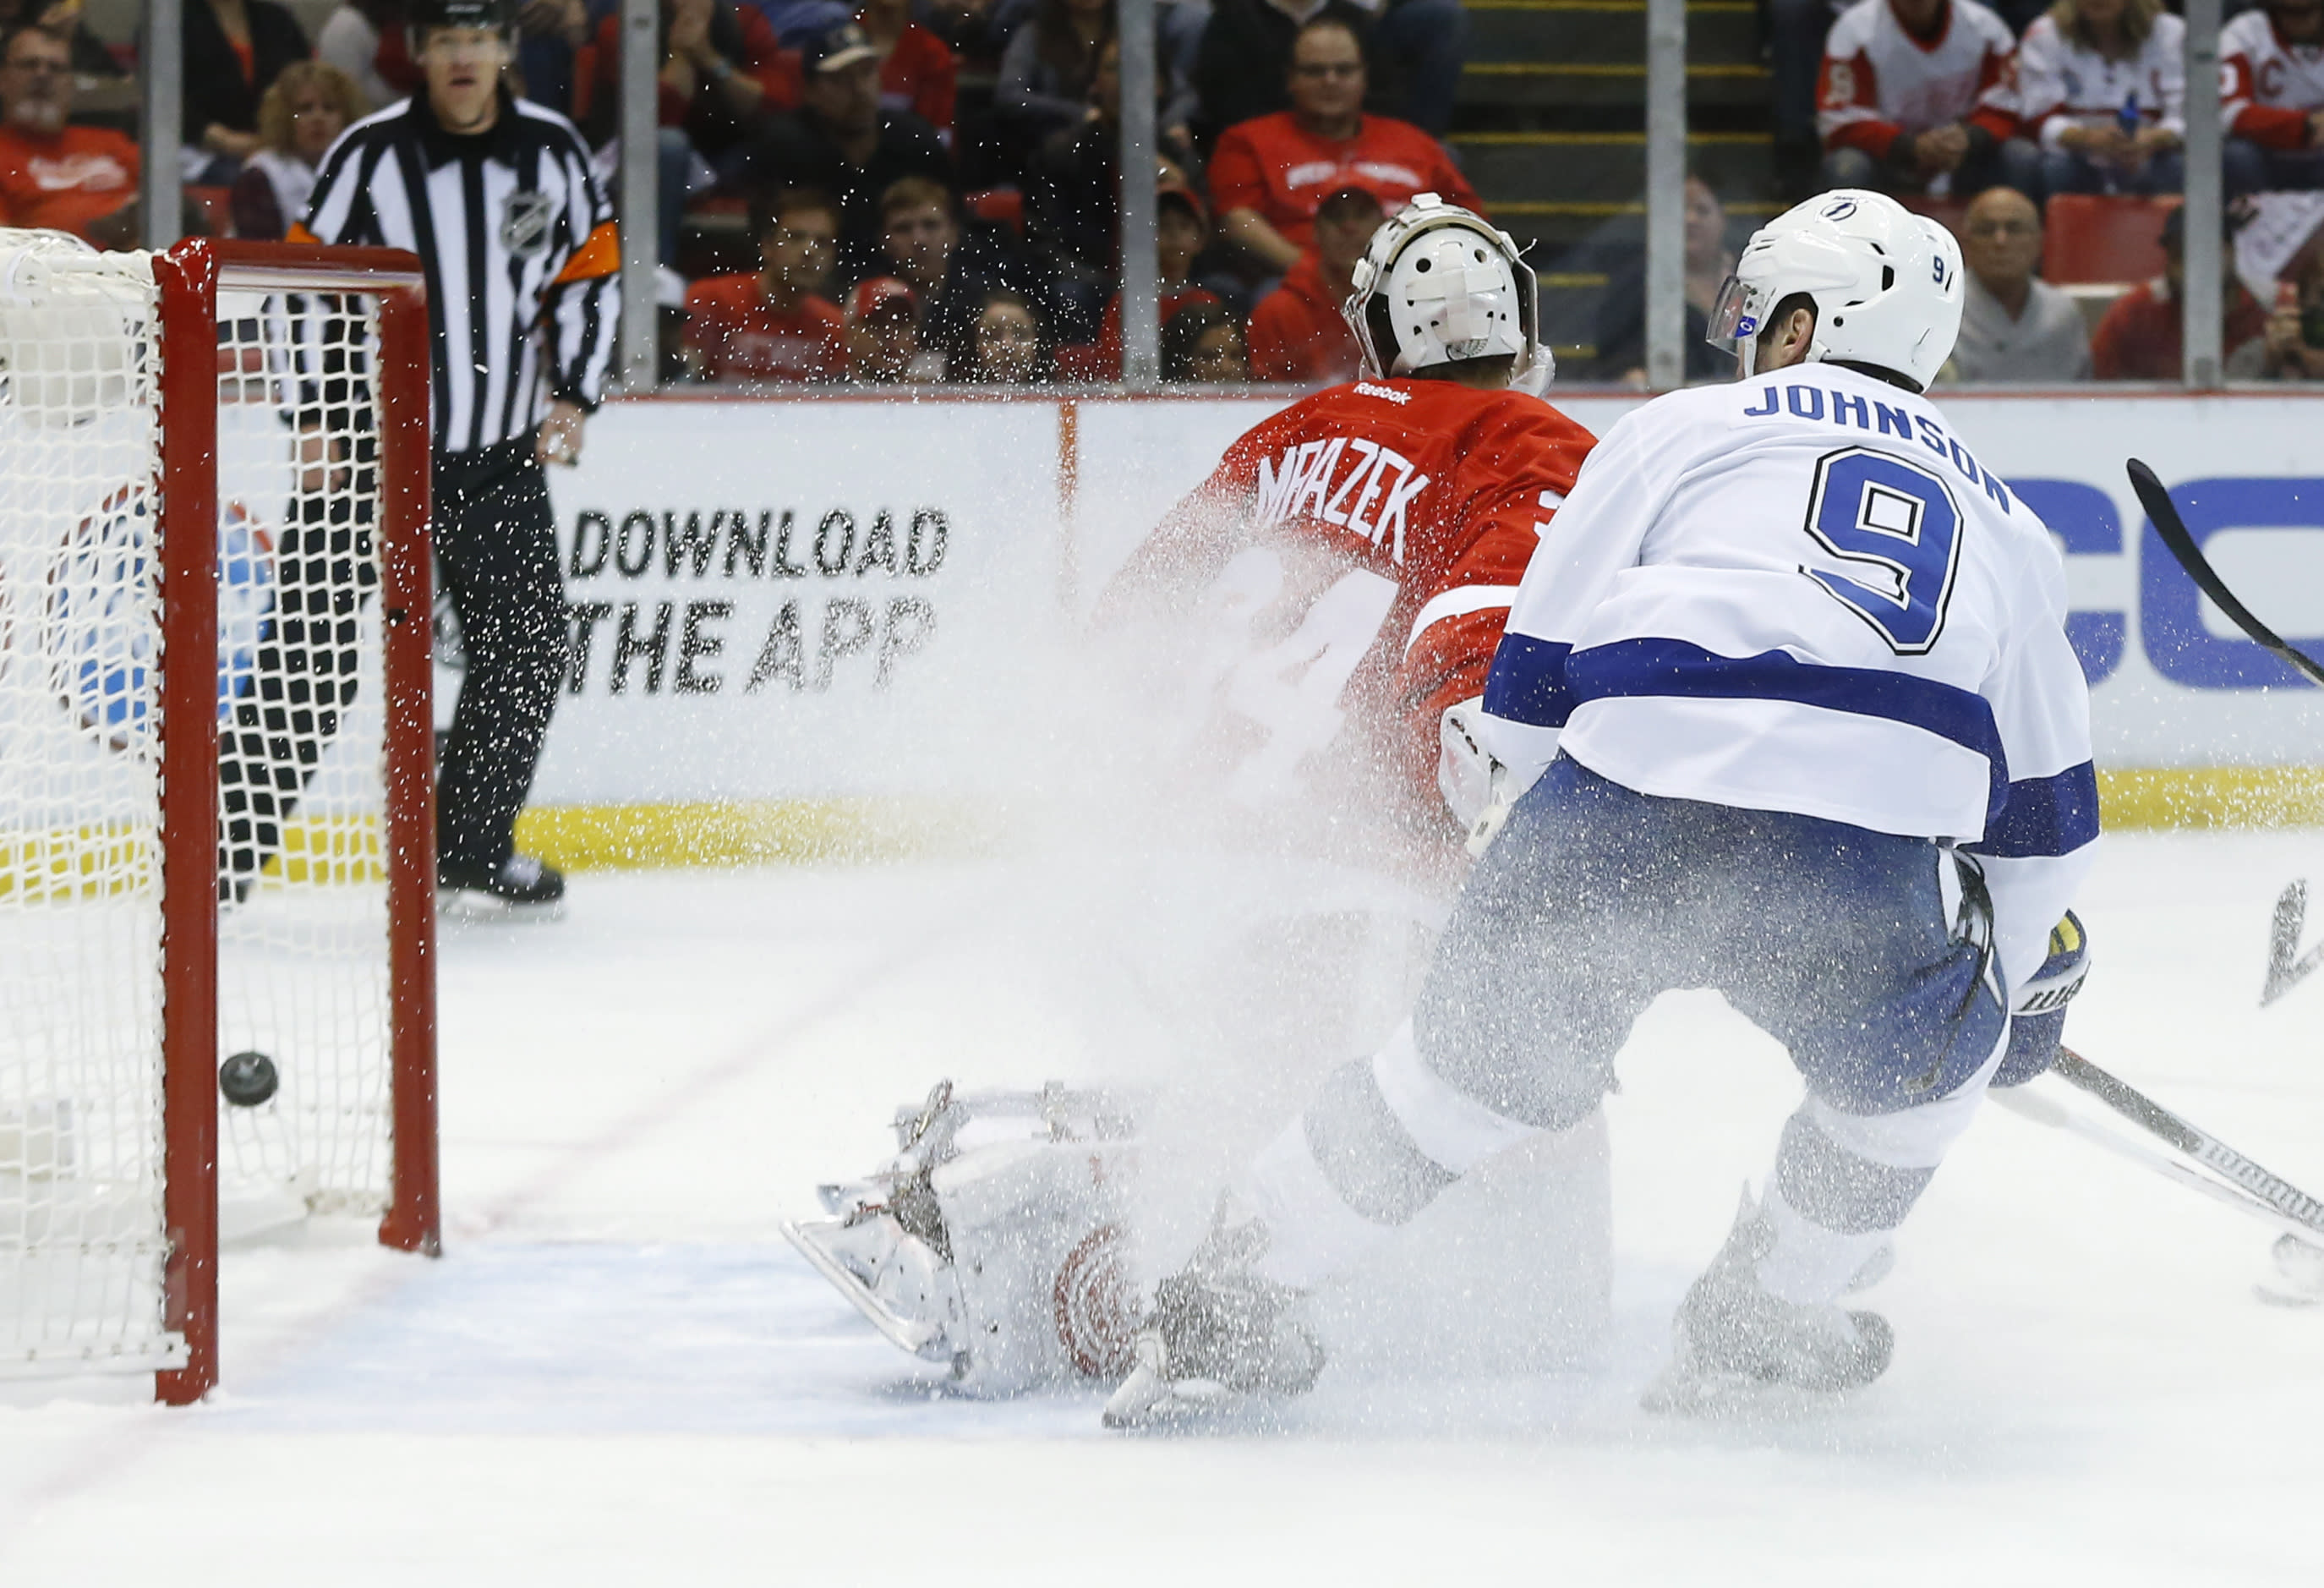 Johnson scores 2, Lightning beat Detroit 5-2 to force Game 7